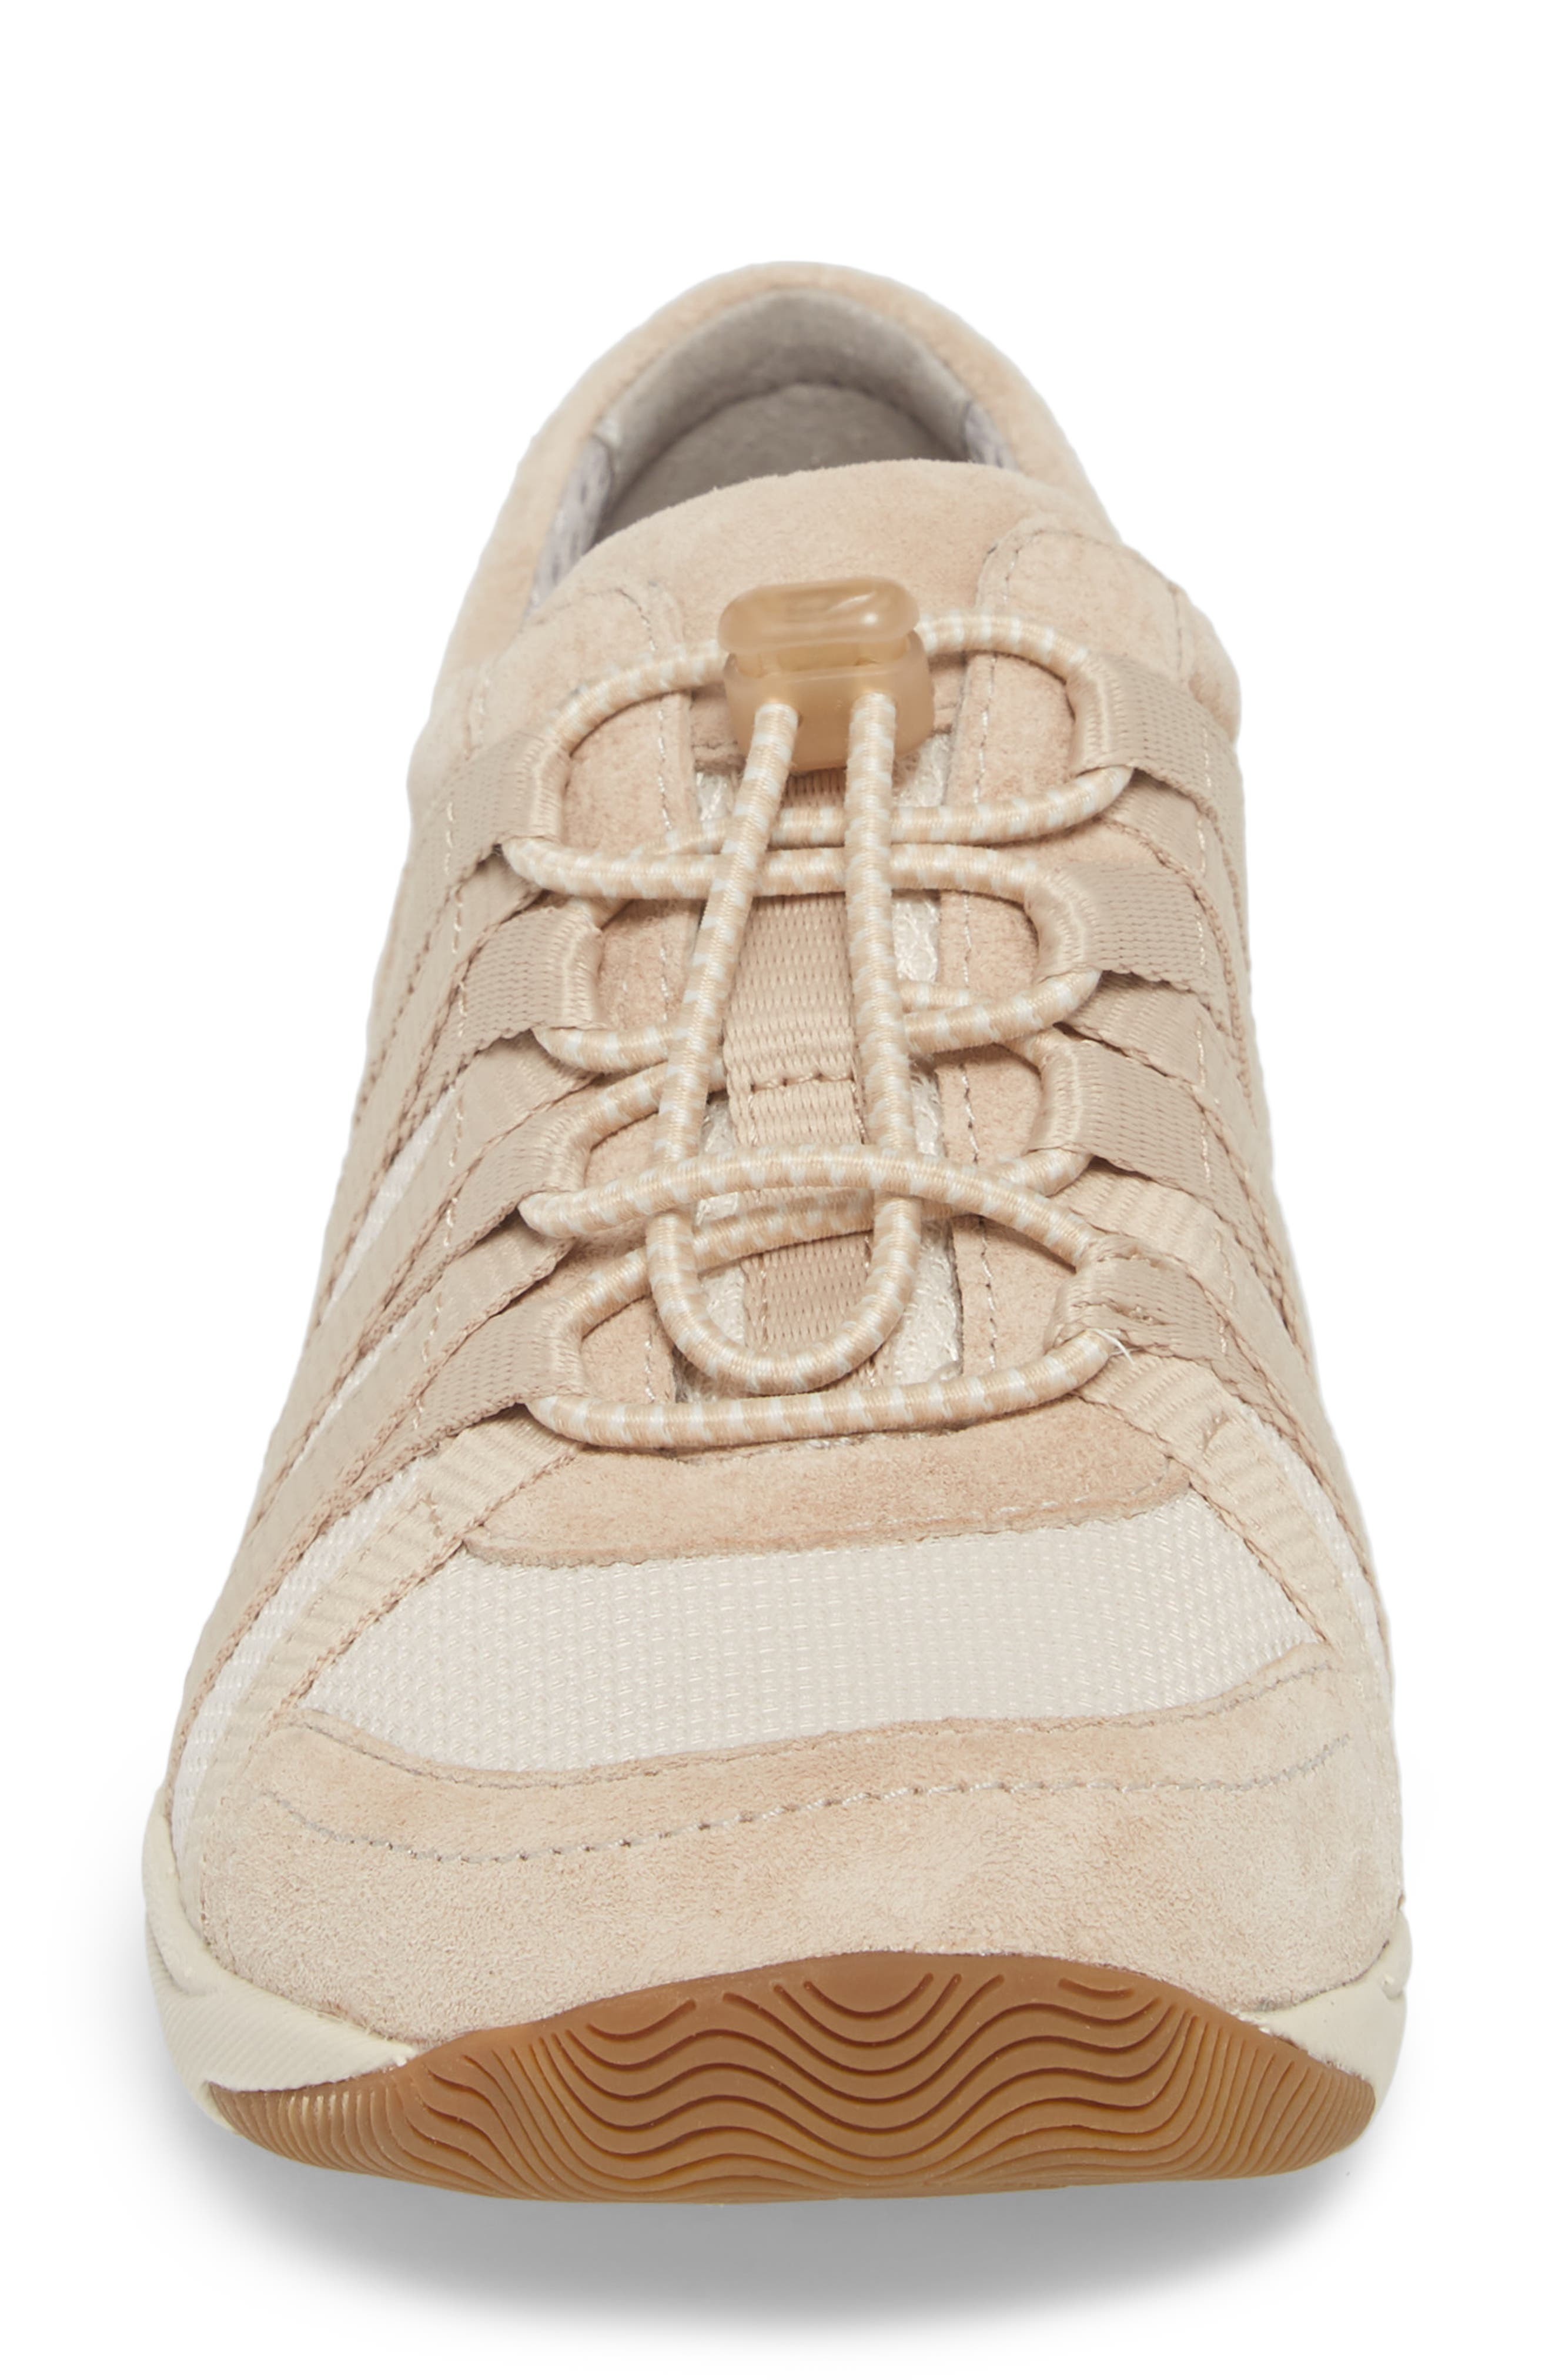 Halifax Collection Honor Sneaker,                             Alternate thumbnail 27, color,